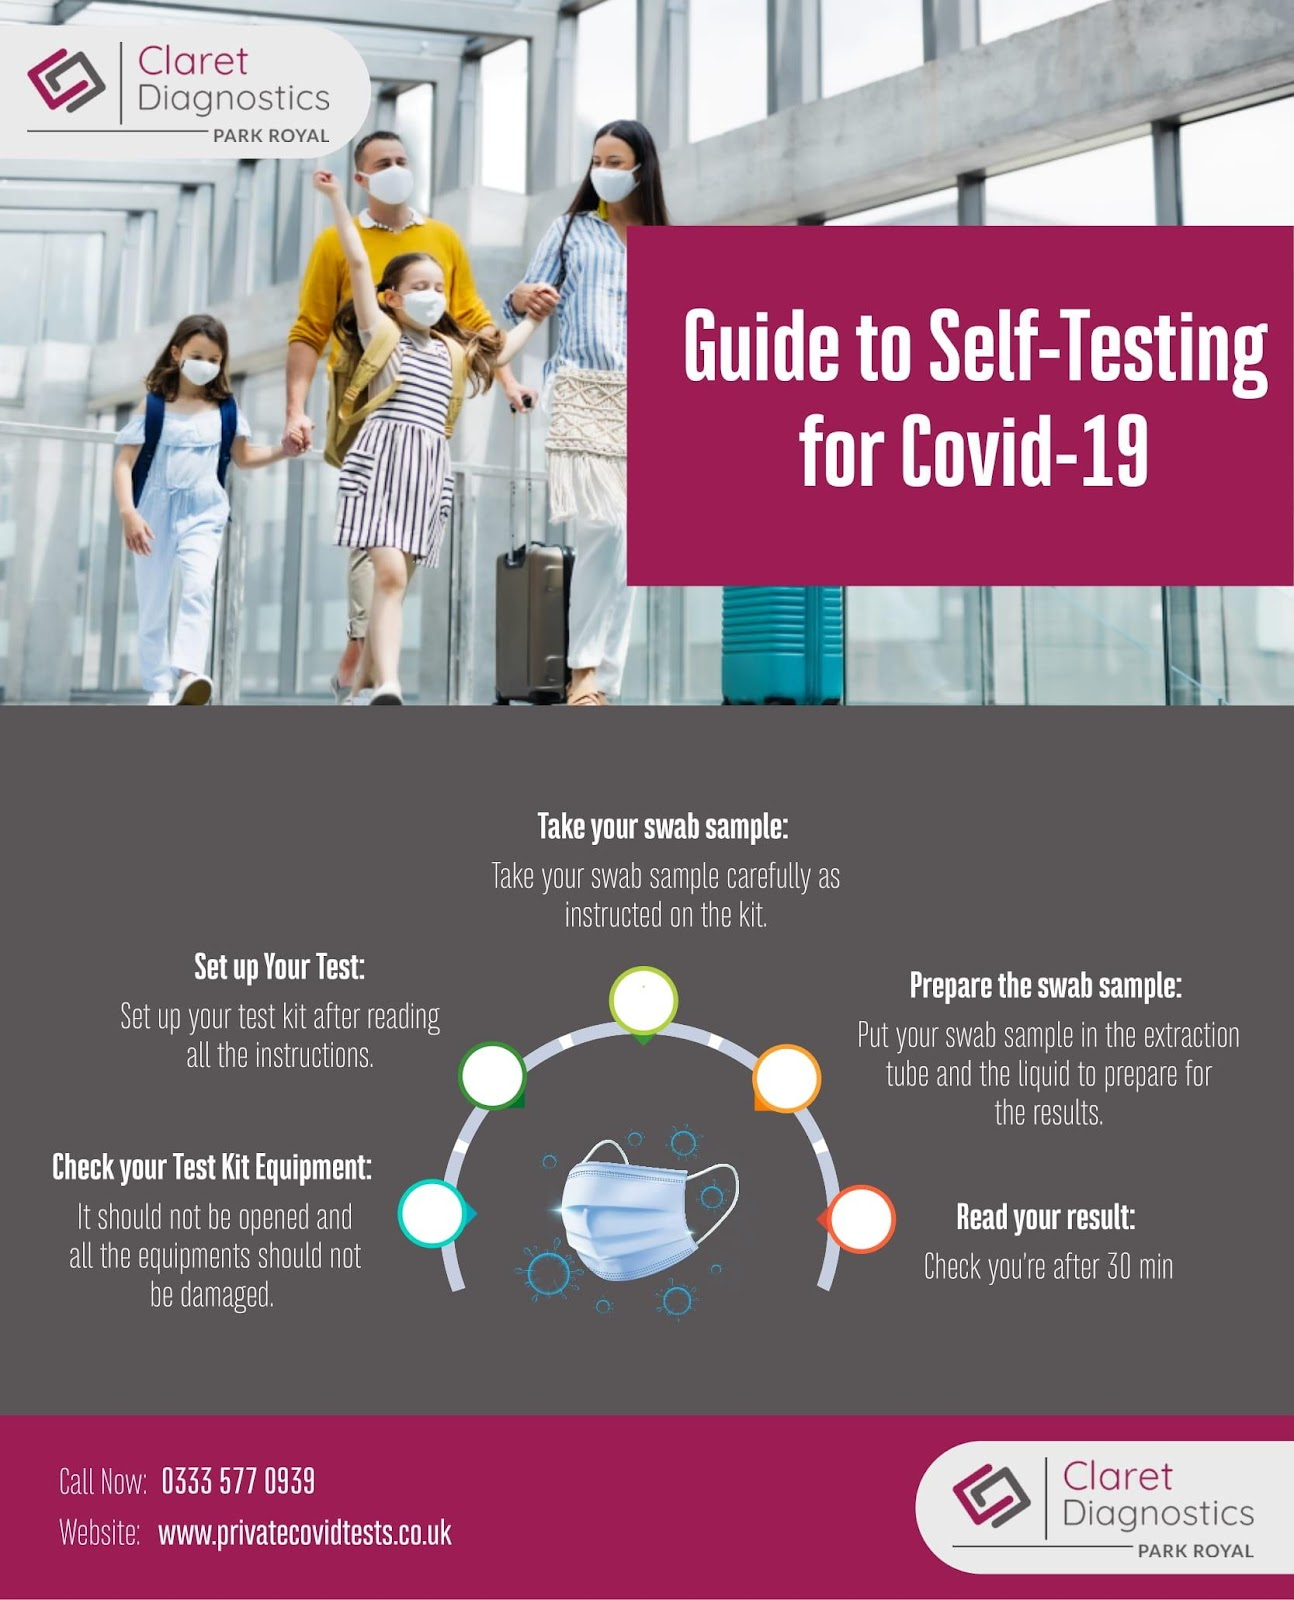 Guide to Self-Testing for Covid-19.jpg